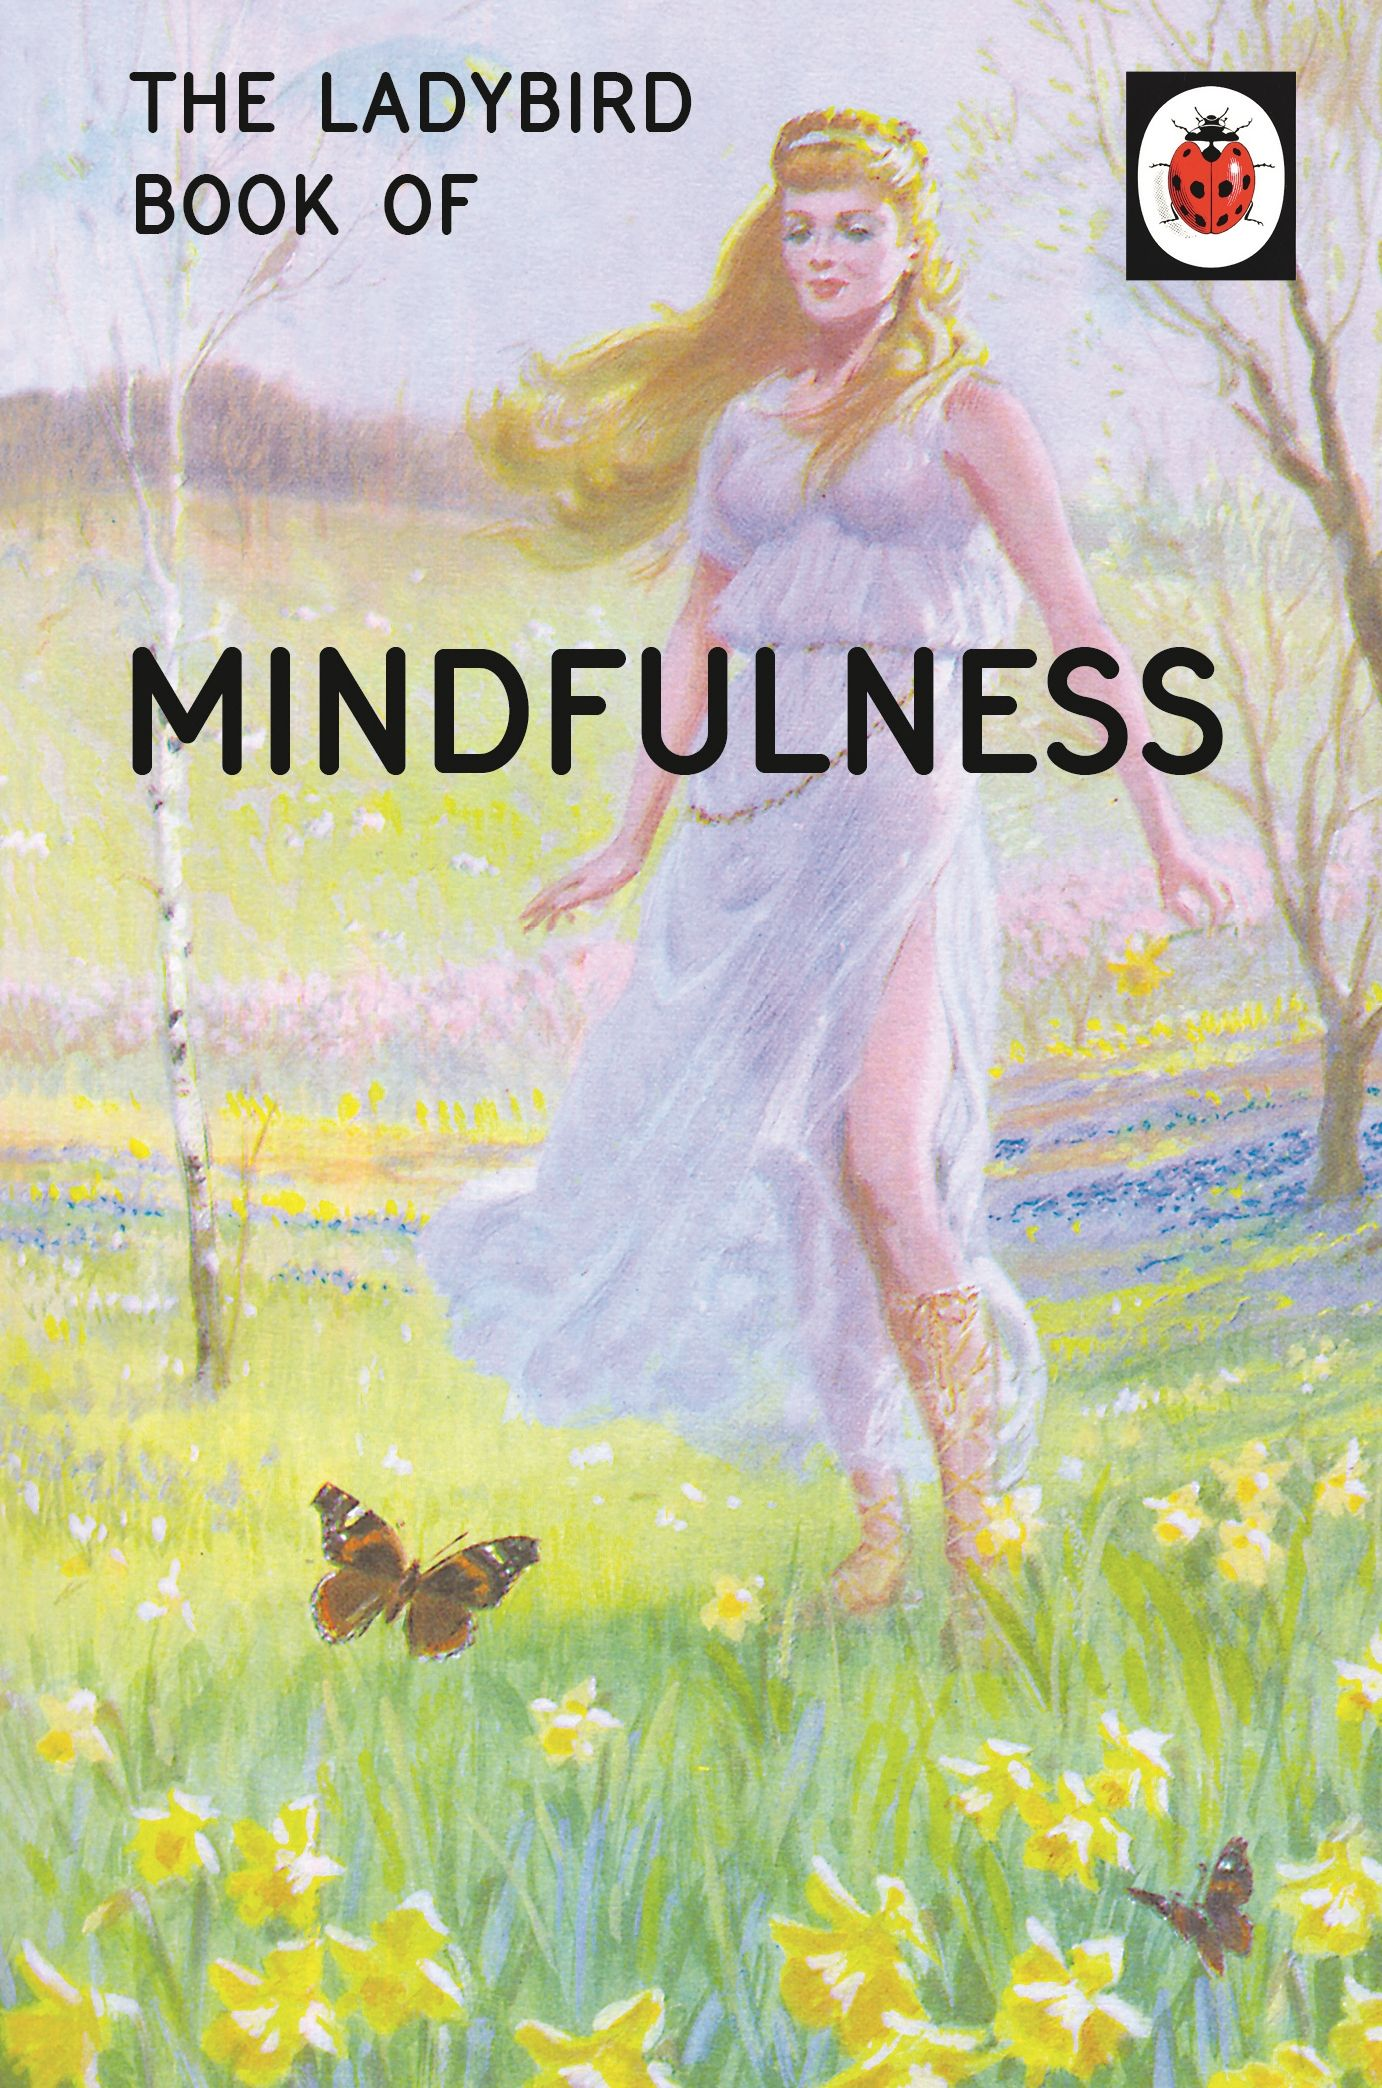 The Ladybird Book of Mindfulness http://www.a-choice-of-gifts.co.uk/giftshop/prod_4991792-The-Ladybird-Book-of-Mindfulness.html